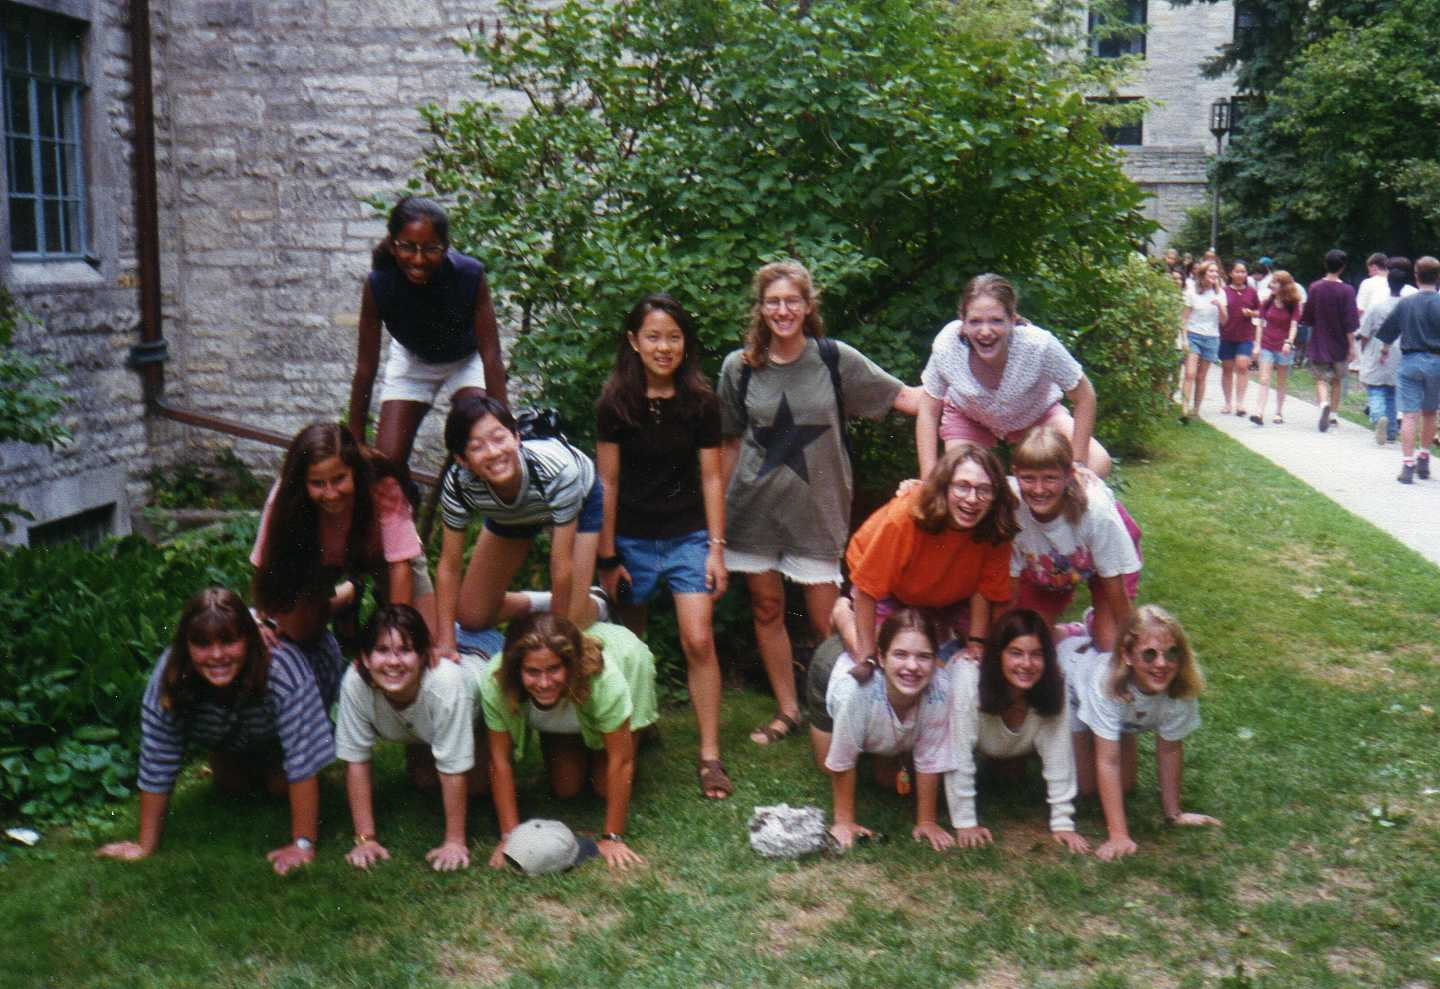 northwestern creative writing camp Teen ink summer program and camp guide for teens  of college life and earn college credit in northwestern university's college prep program  creative writing residency summer camp program.